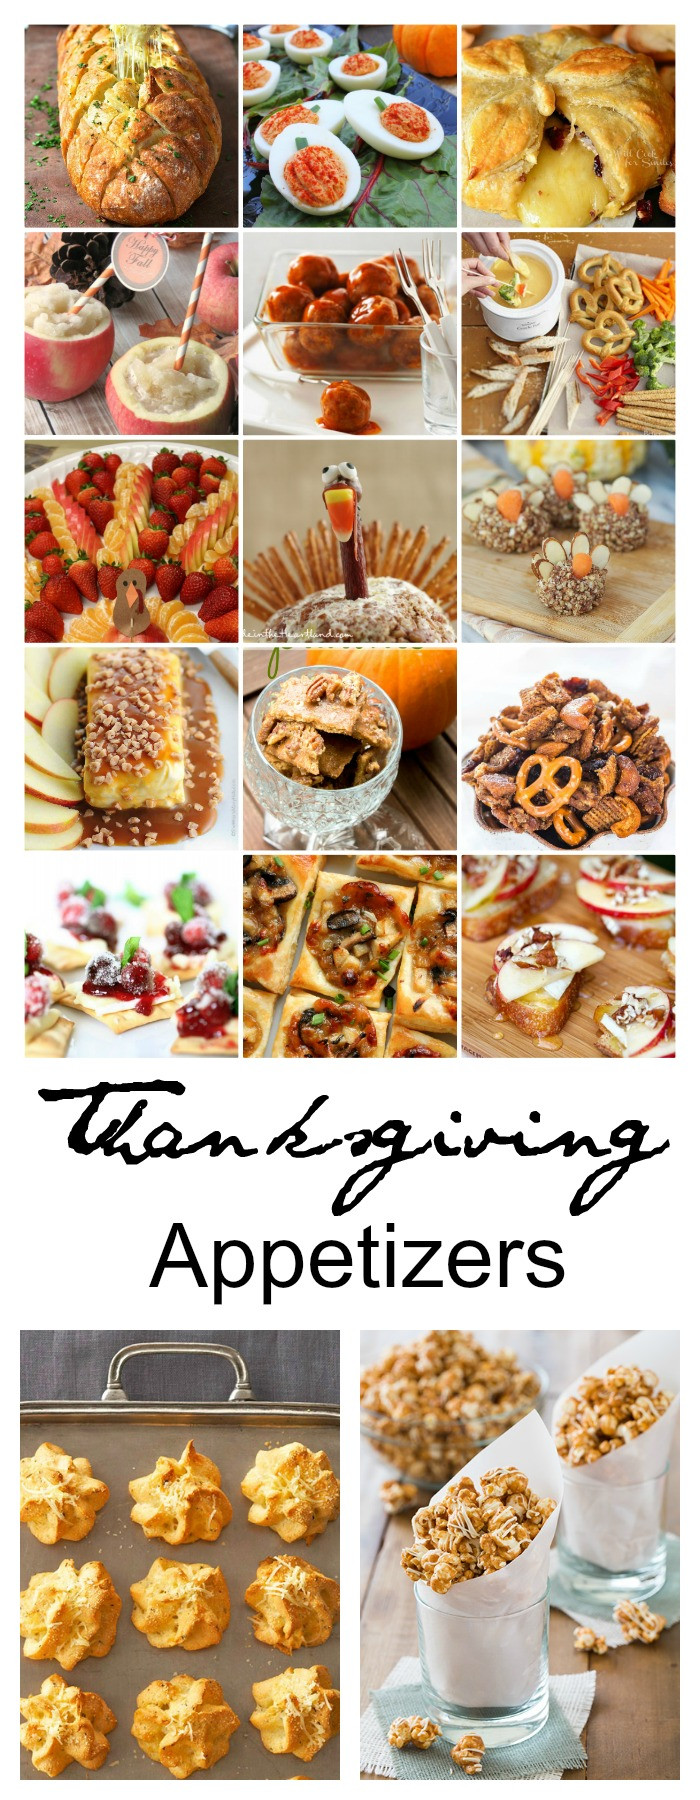 Best Appetizers For Thanksgiving  Thanksgiving Appetizers The Idea Room